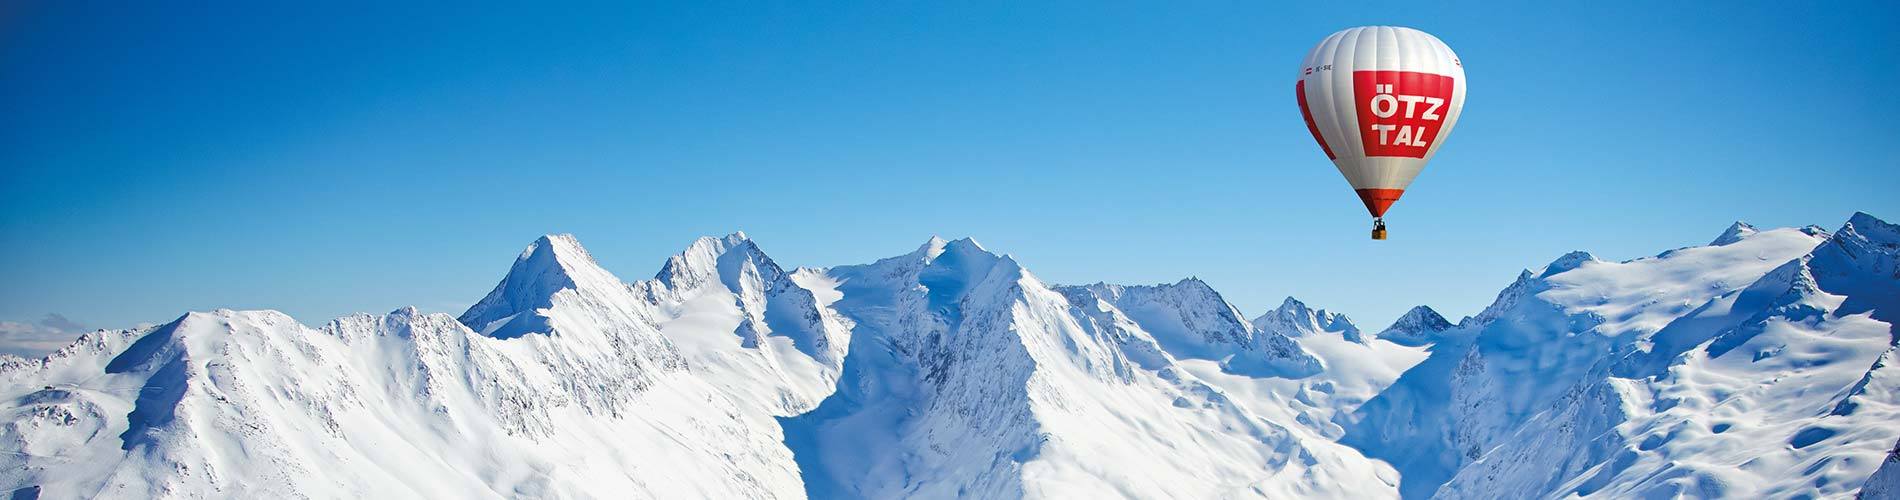 Ski pass news for Skiing holiday in Obergurgl-Hochgurgl and Sölden Tyrol Austria